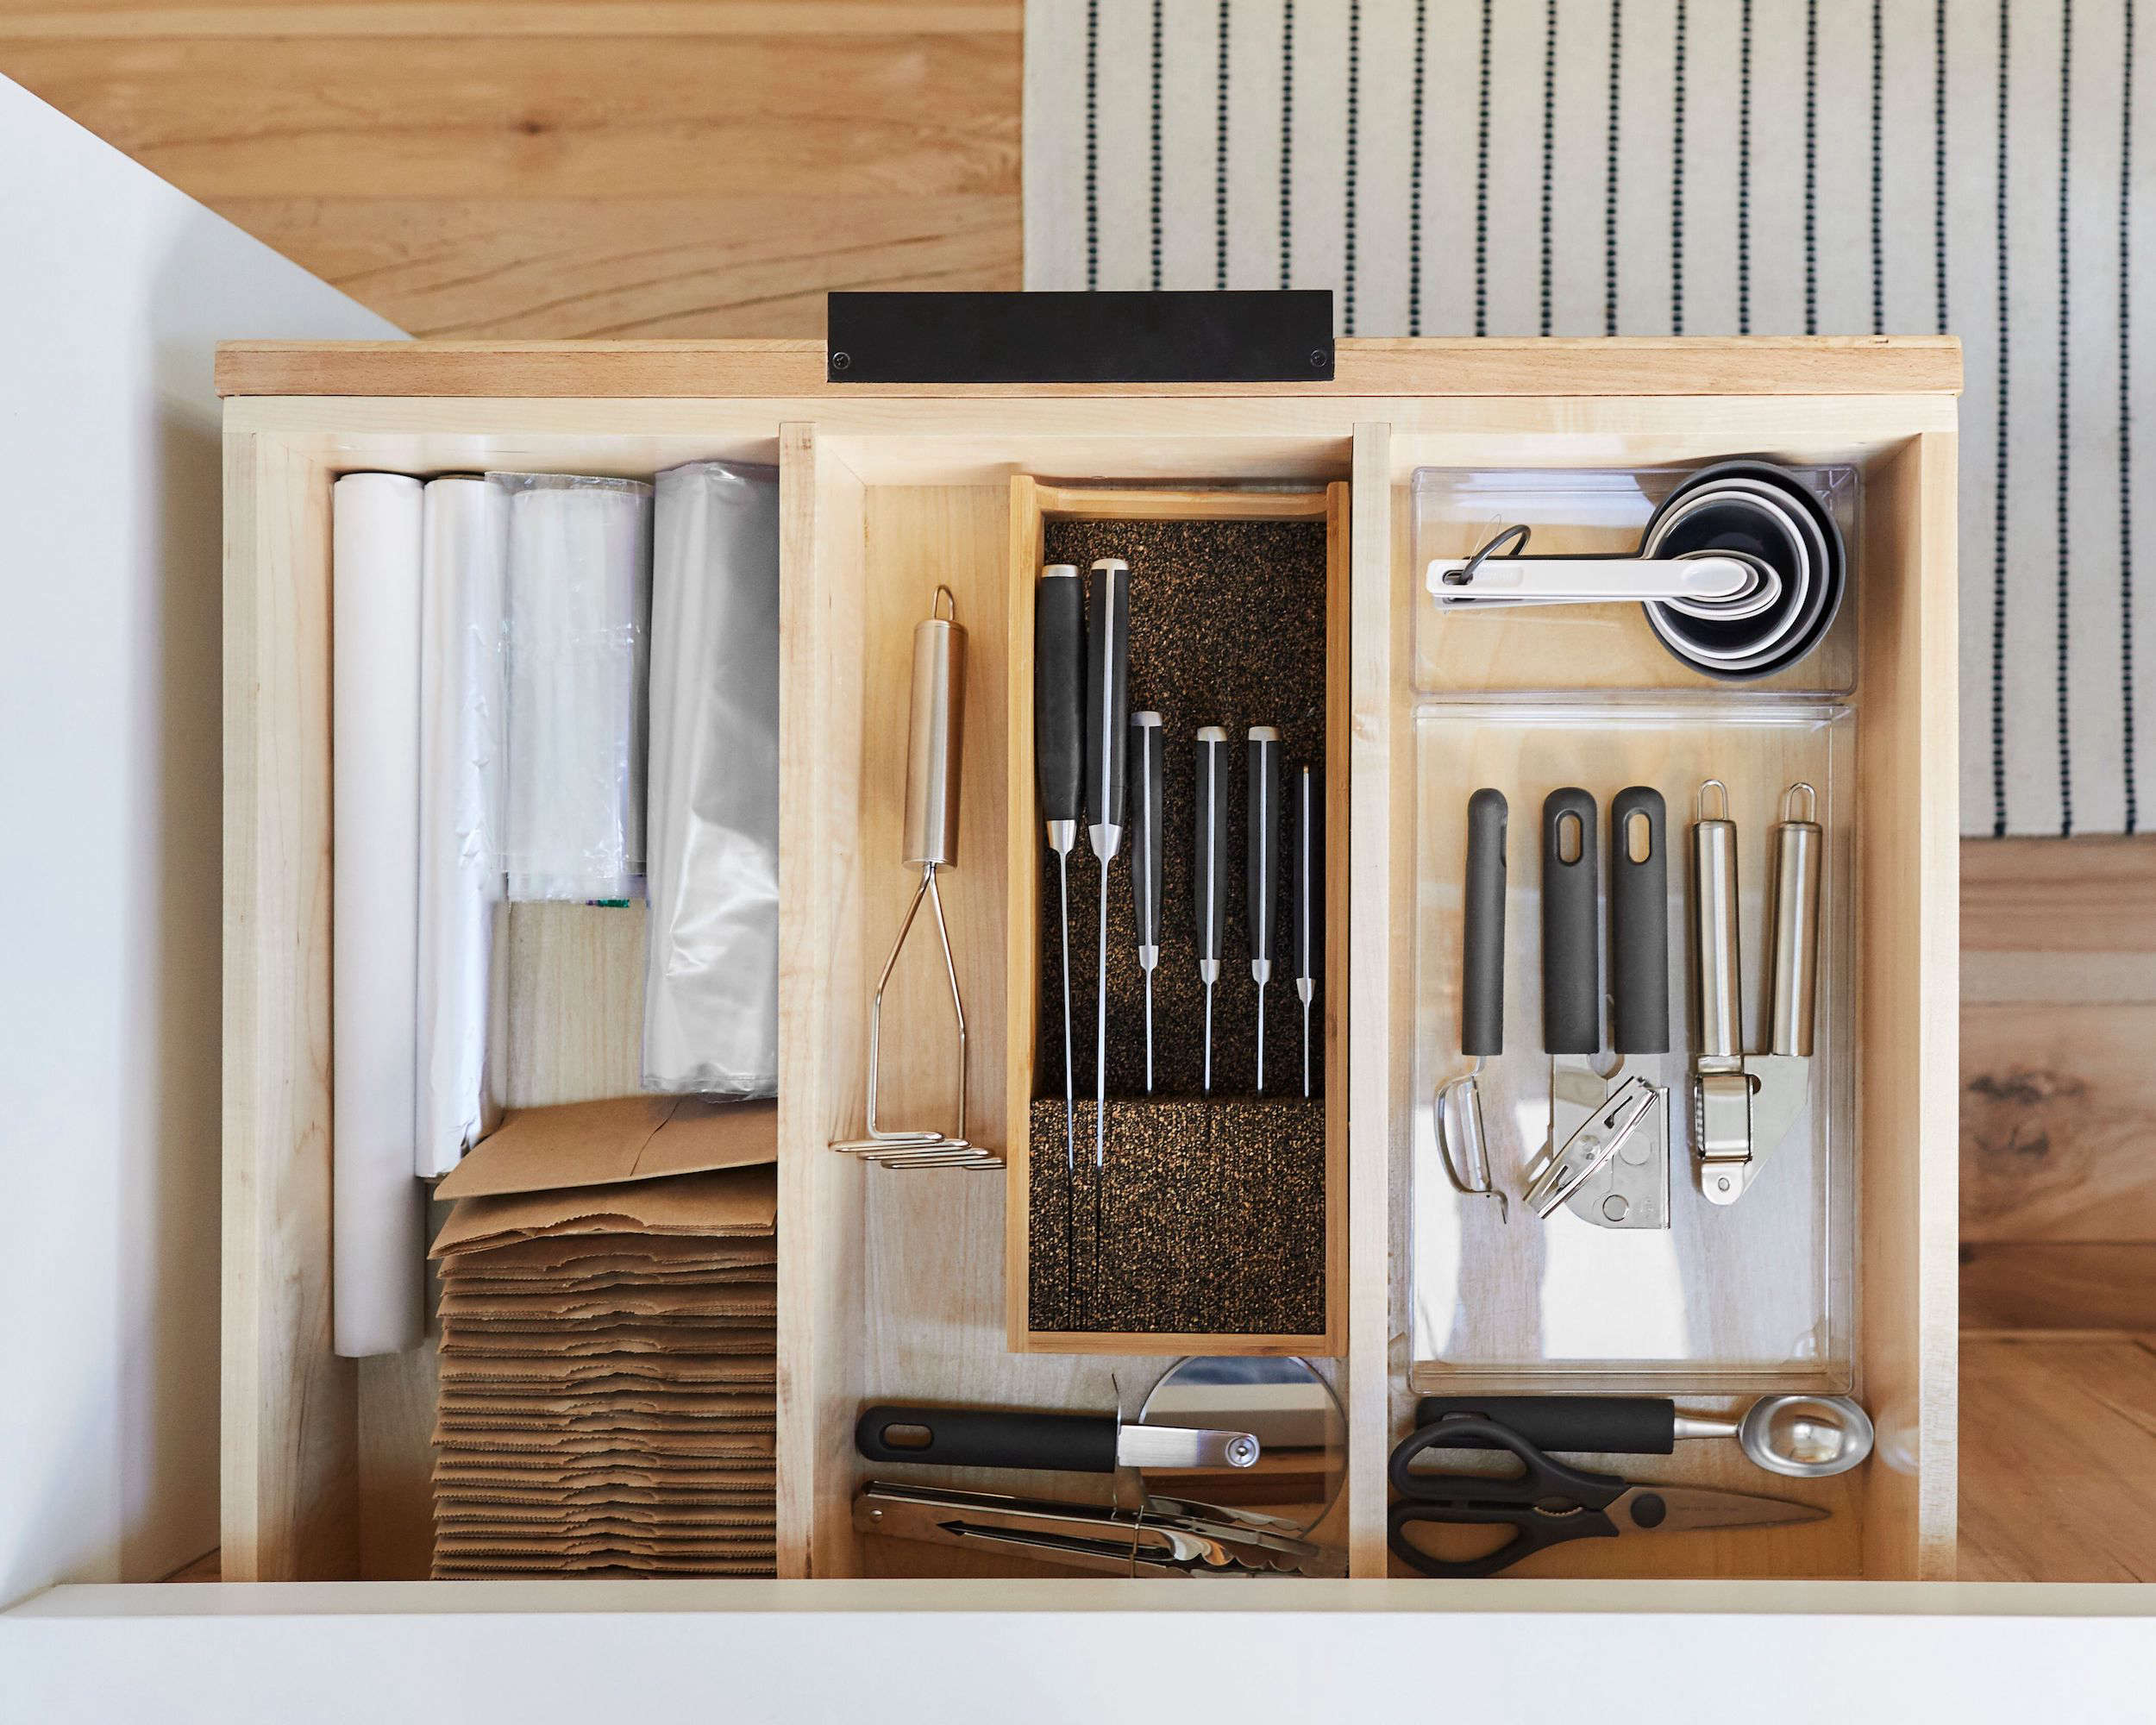 10 Above And Beyond Kitchen Organization Ideas From Emily Henderson